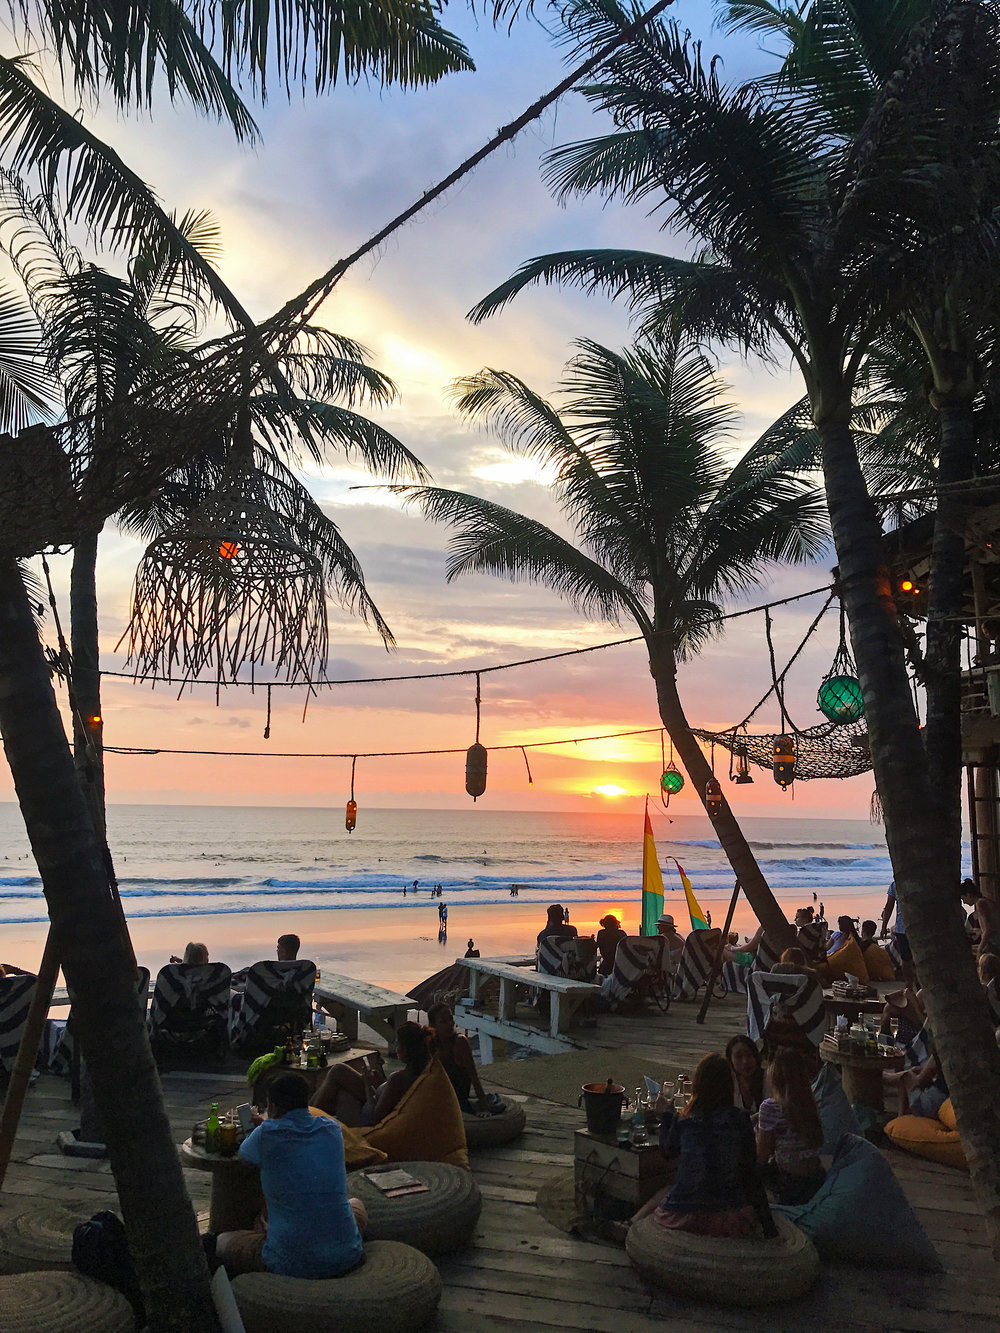 Sunset at La Brisa beach club, Canggu, Bali